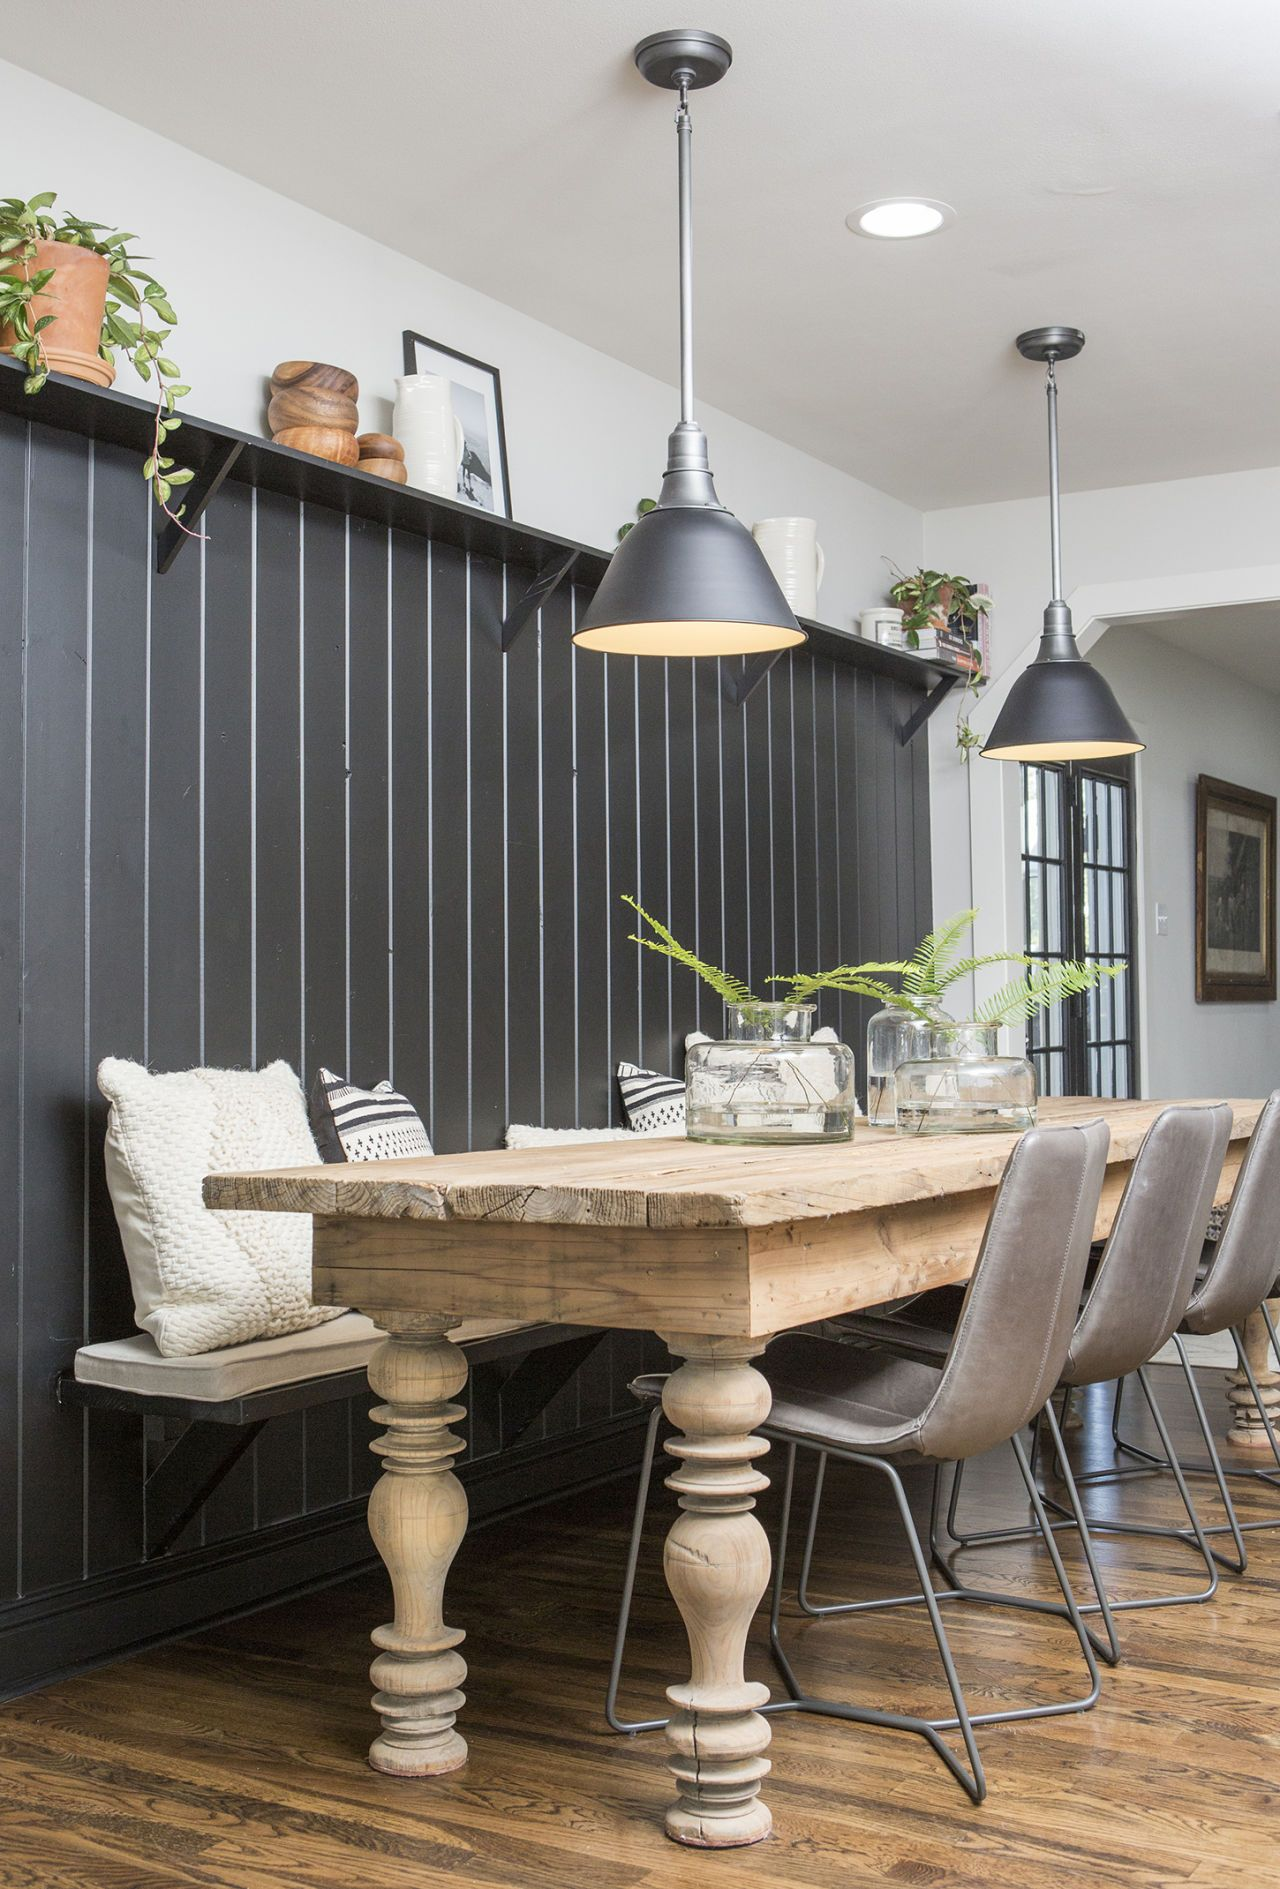 The Fixer Upper Home Featured On Last Week S Episode Is Already Back On The Market With Images Joanna Gaines Dining Room Fixer Upper Dining Room Farmhouse Dining Room